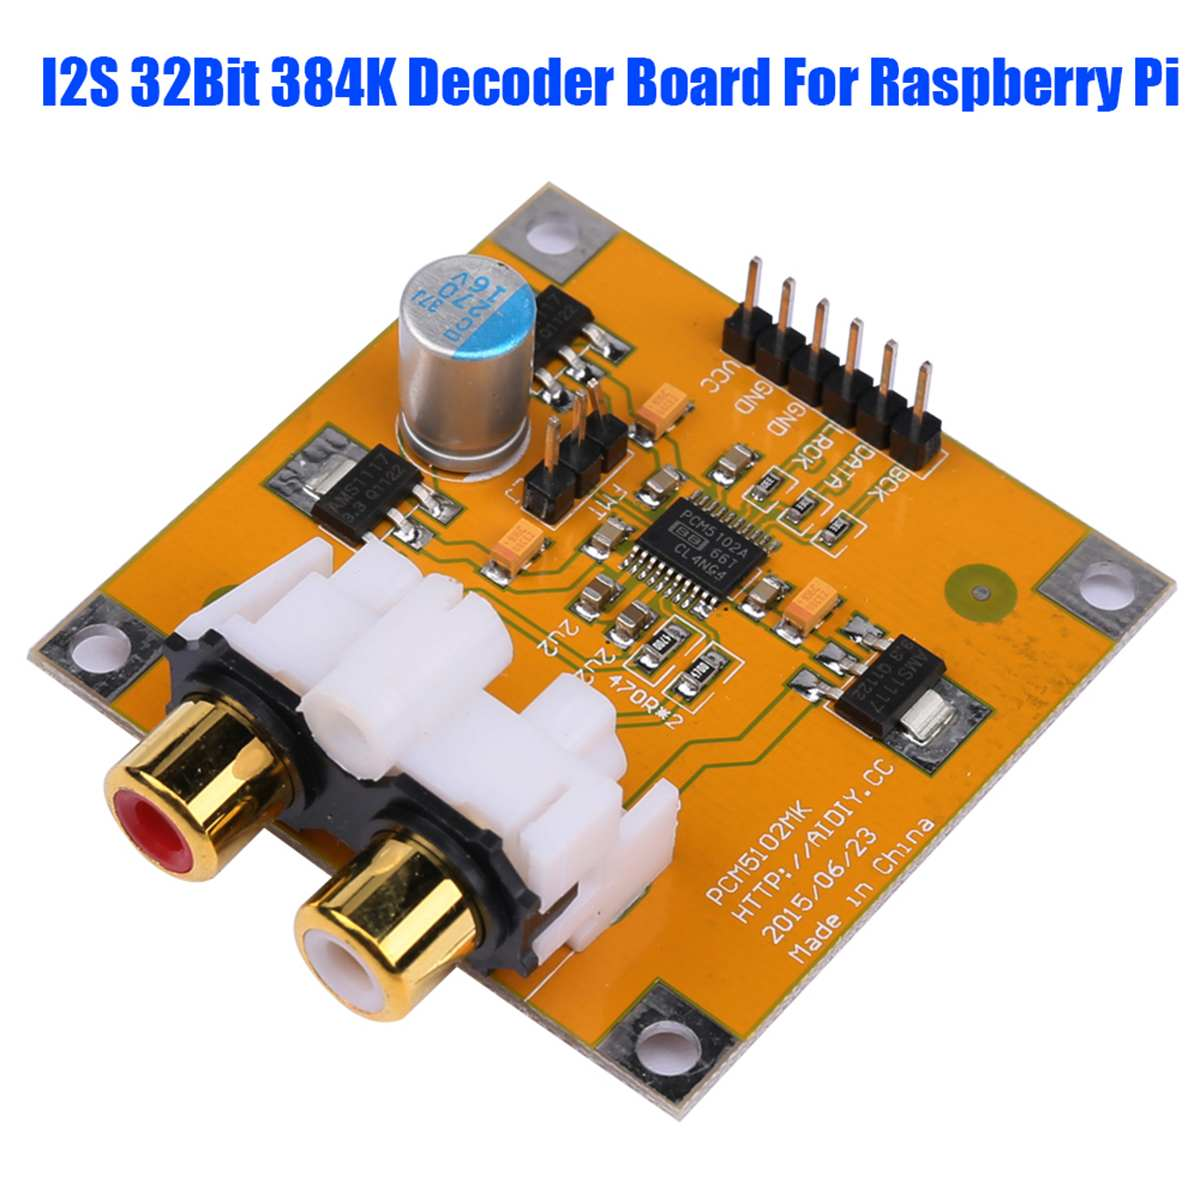 Dac Cliate 1pc Dac Decoder Board M5102/pcm5102a I2s 32bit 384k For Raspberry Pi Red Core Player